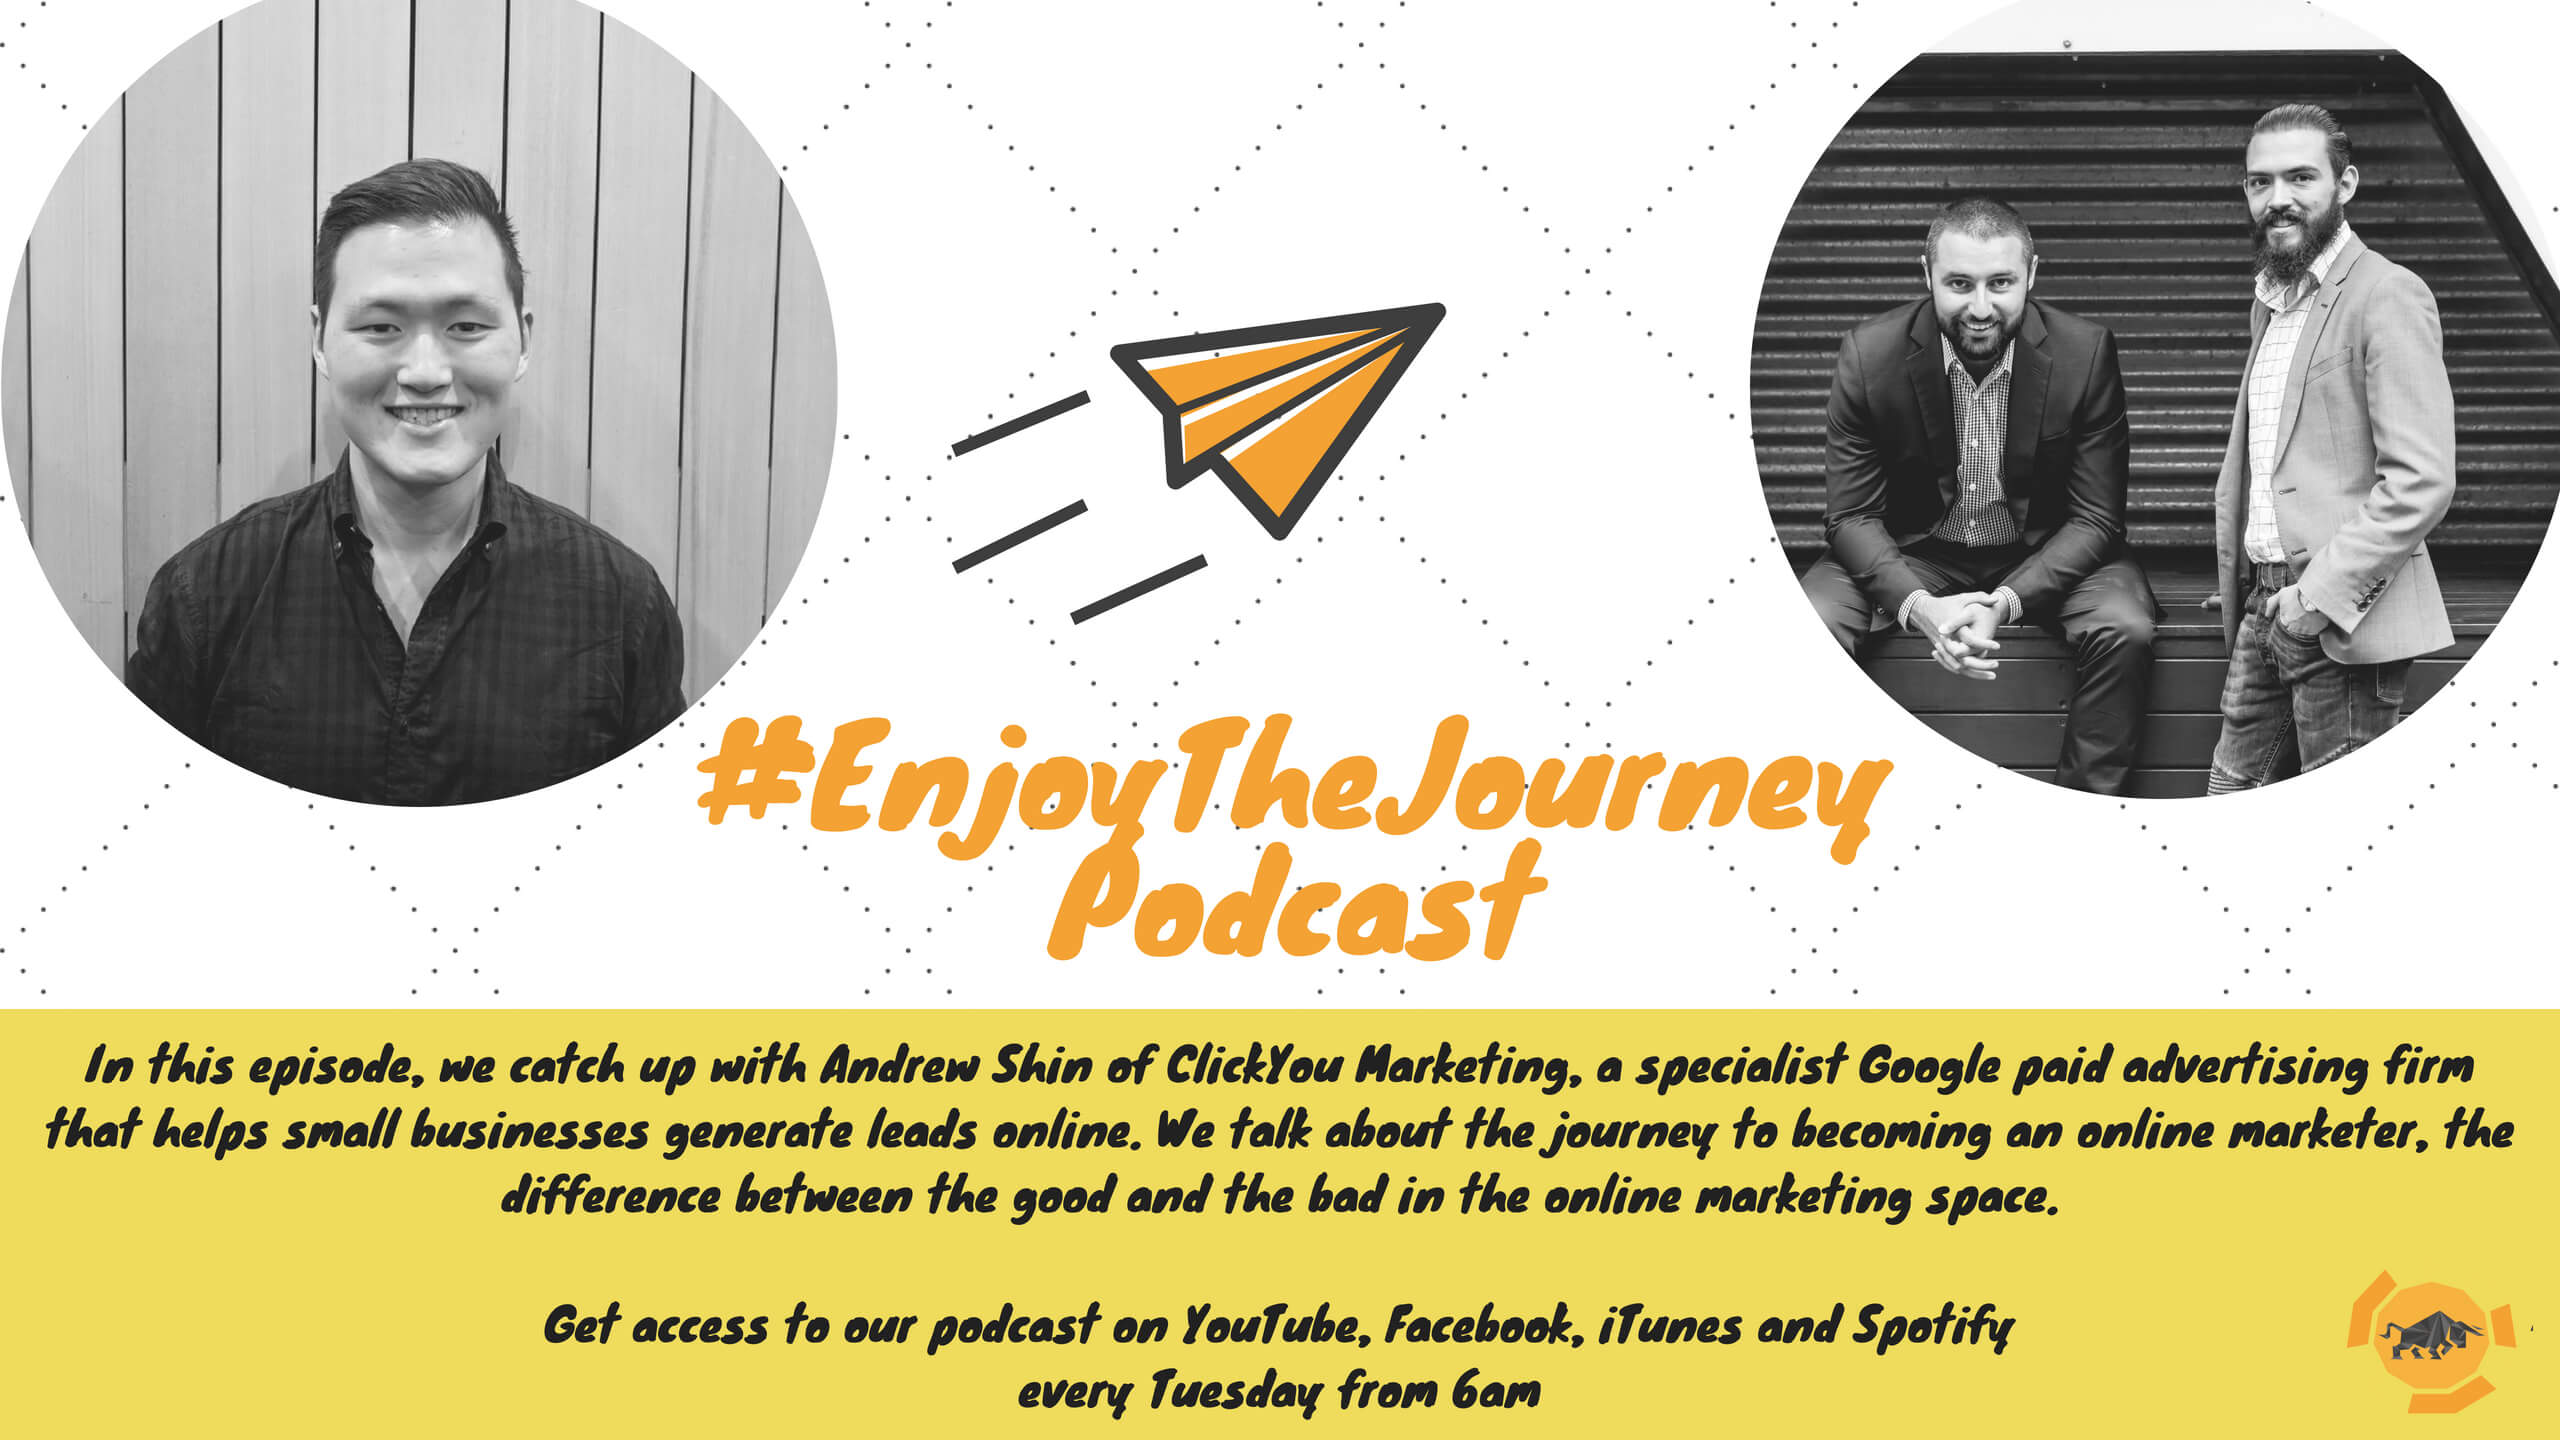 #EnjoyTheJourney Podcast Ep 22 – Andrew Shin on becoming an online marketer